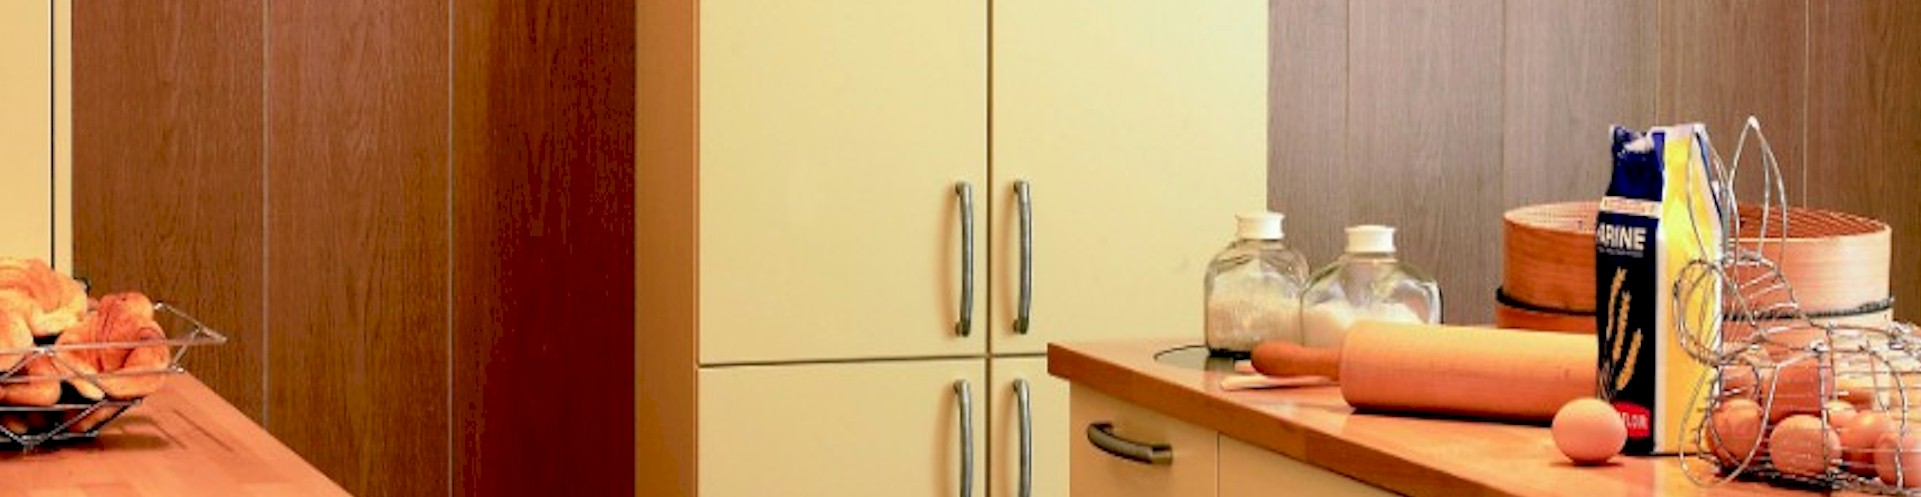 Suppliers Of Internal Cladding For Bathrooms Amp Kitchens